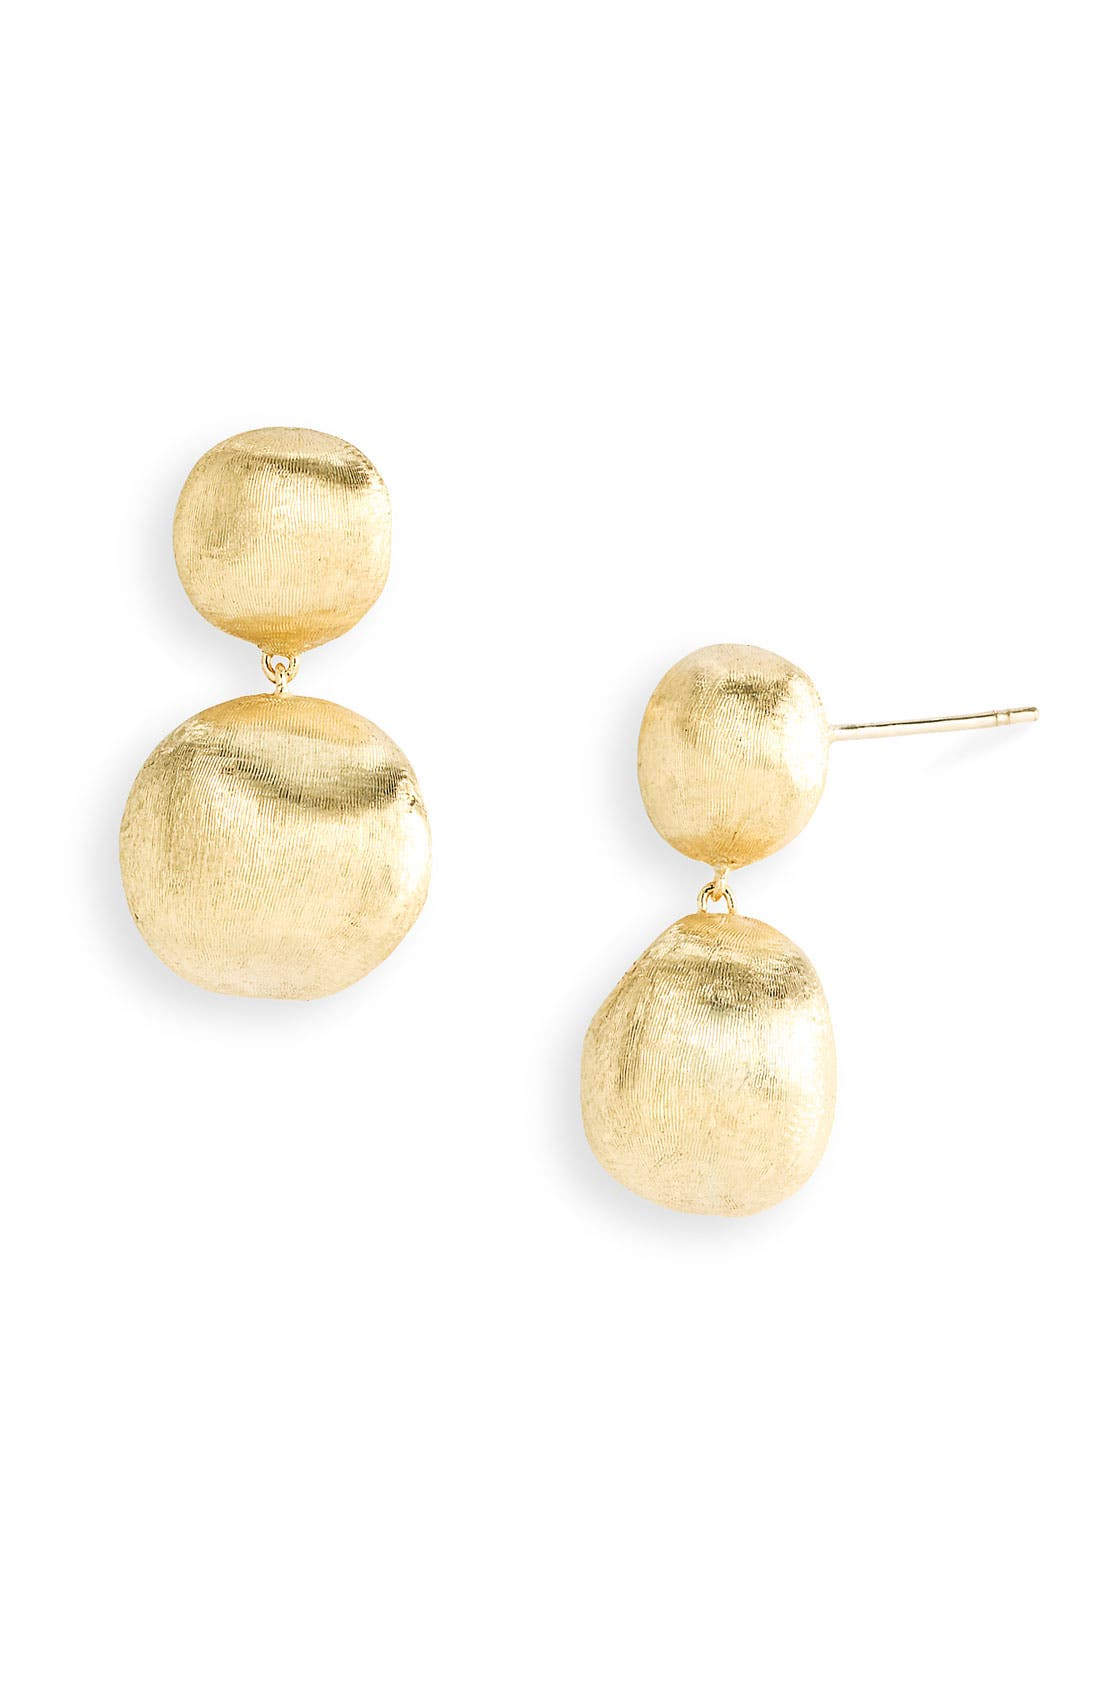 Main Image - Marco Bicego 'Africa Gold' Double Drop Earrings